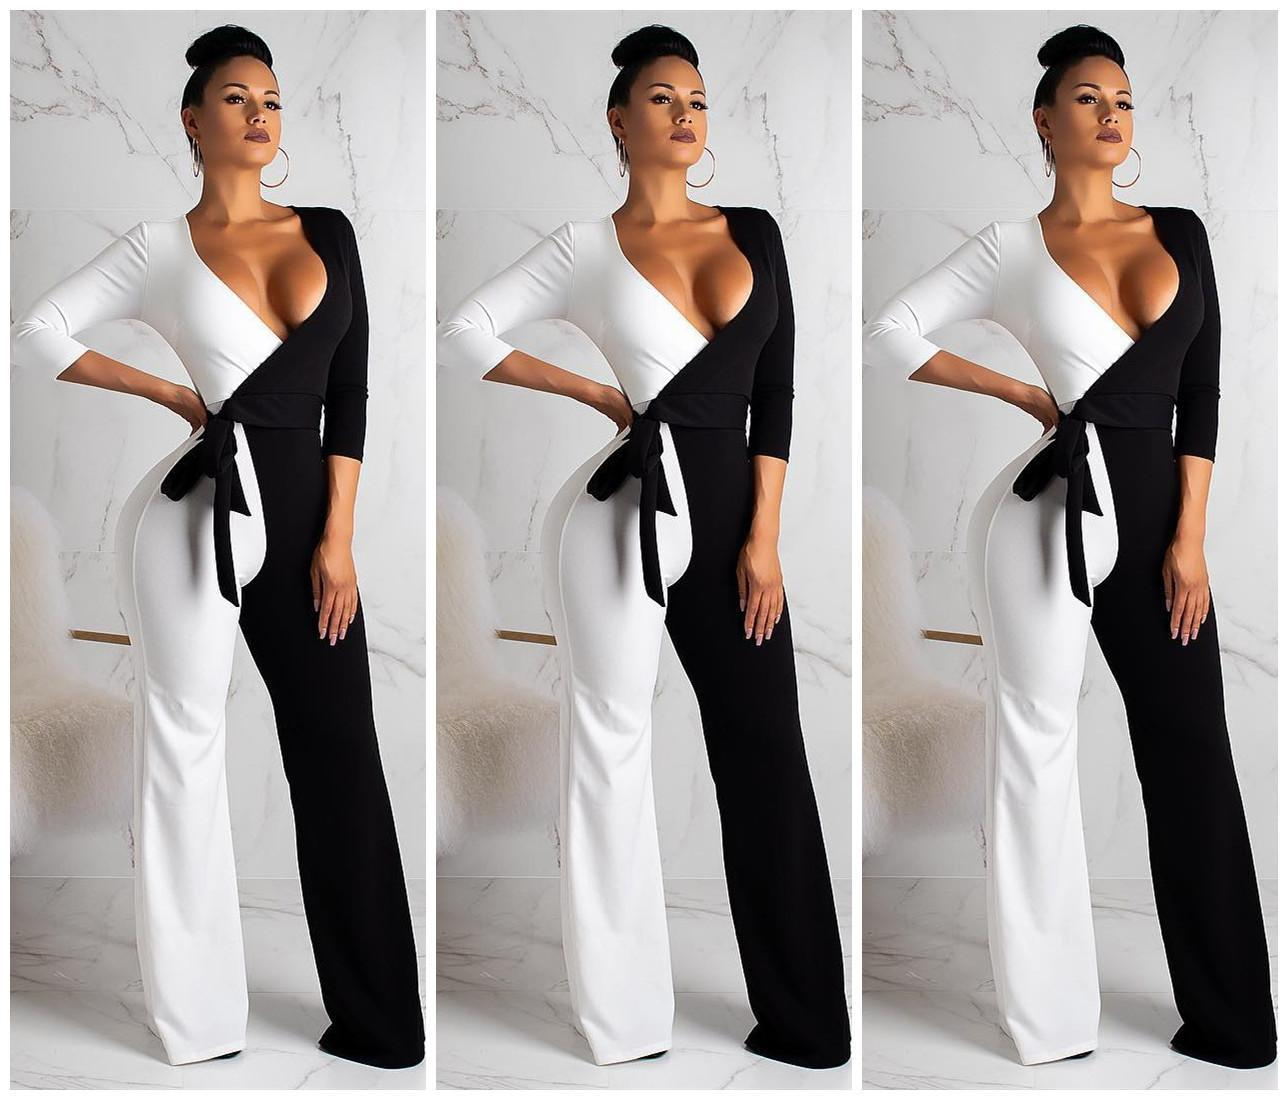 97bf7b9f1494 2019 Summer New European And American Models Jumpsuit Black And ...